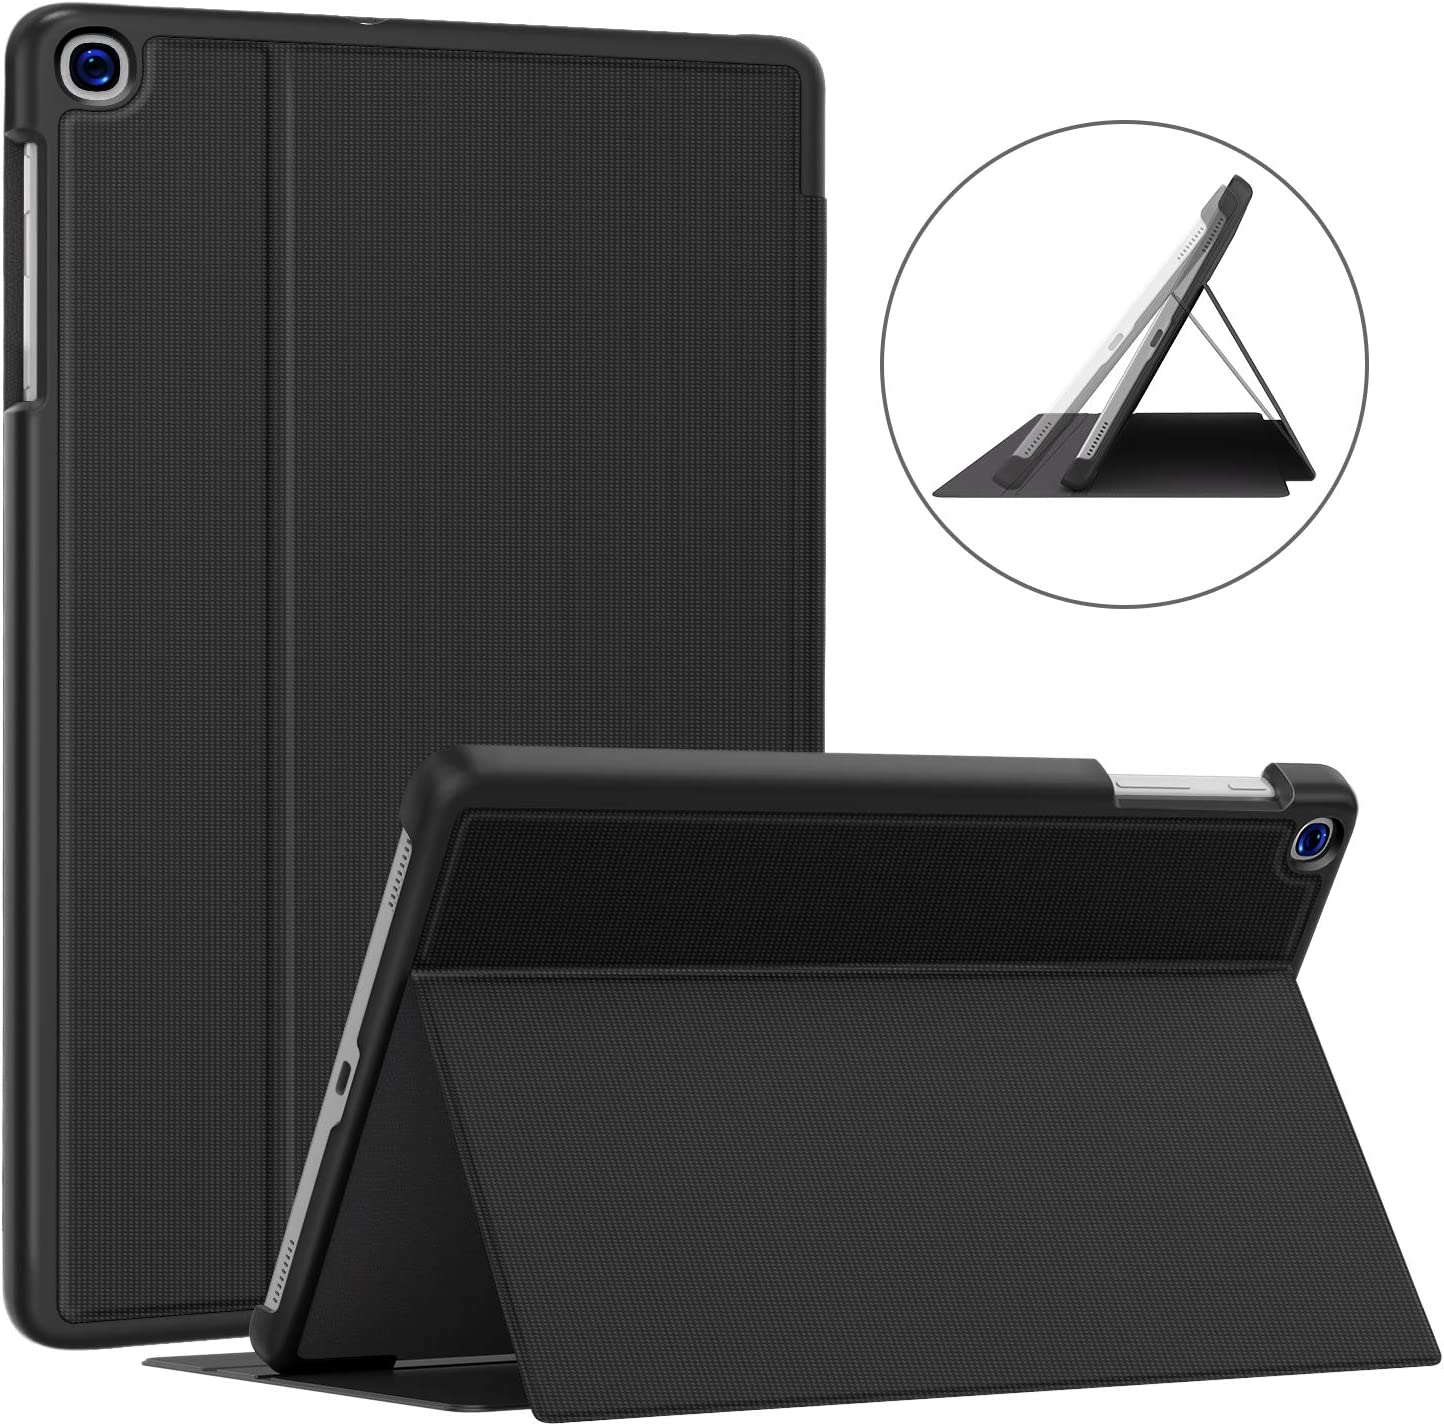 Soke Galaxy Tab A 10.1 Case 2019, Premium Shock Proof Stand Folio Case, Multi- Viewing Angles, Soft TPU Back Cover for Samsung Galaxy Tab A 10.1 inch Tablet [SM-T510/T515],Black